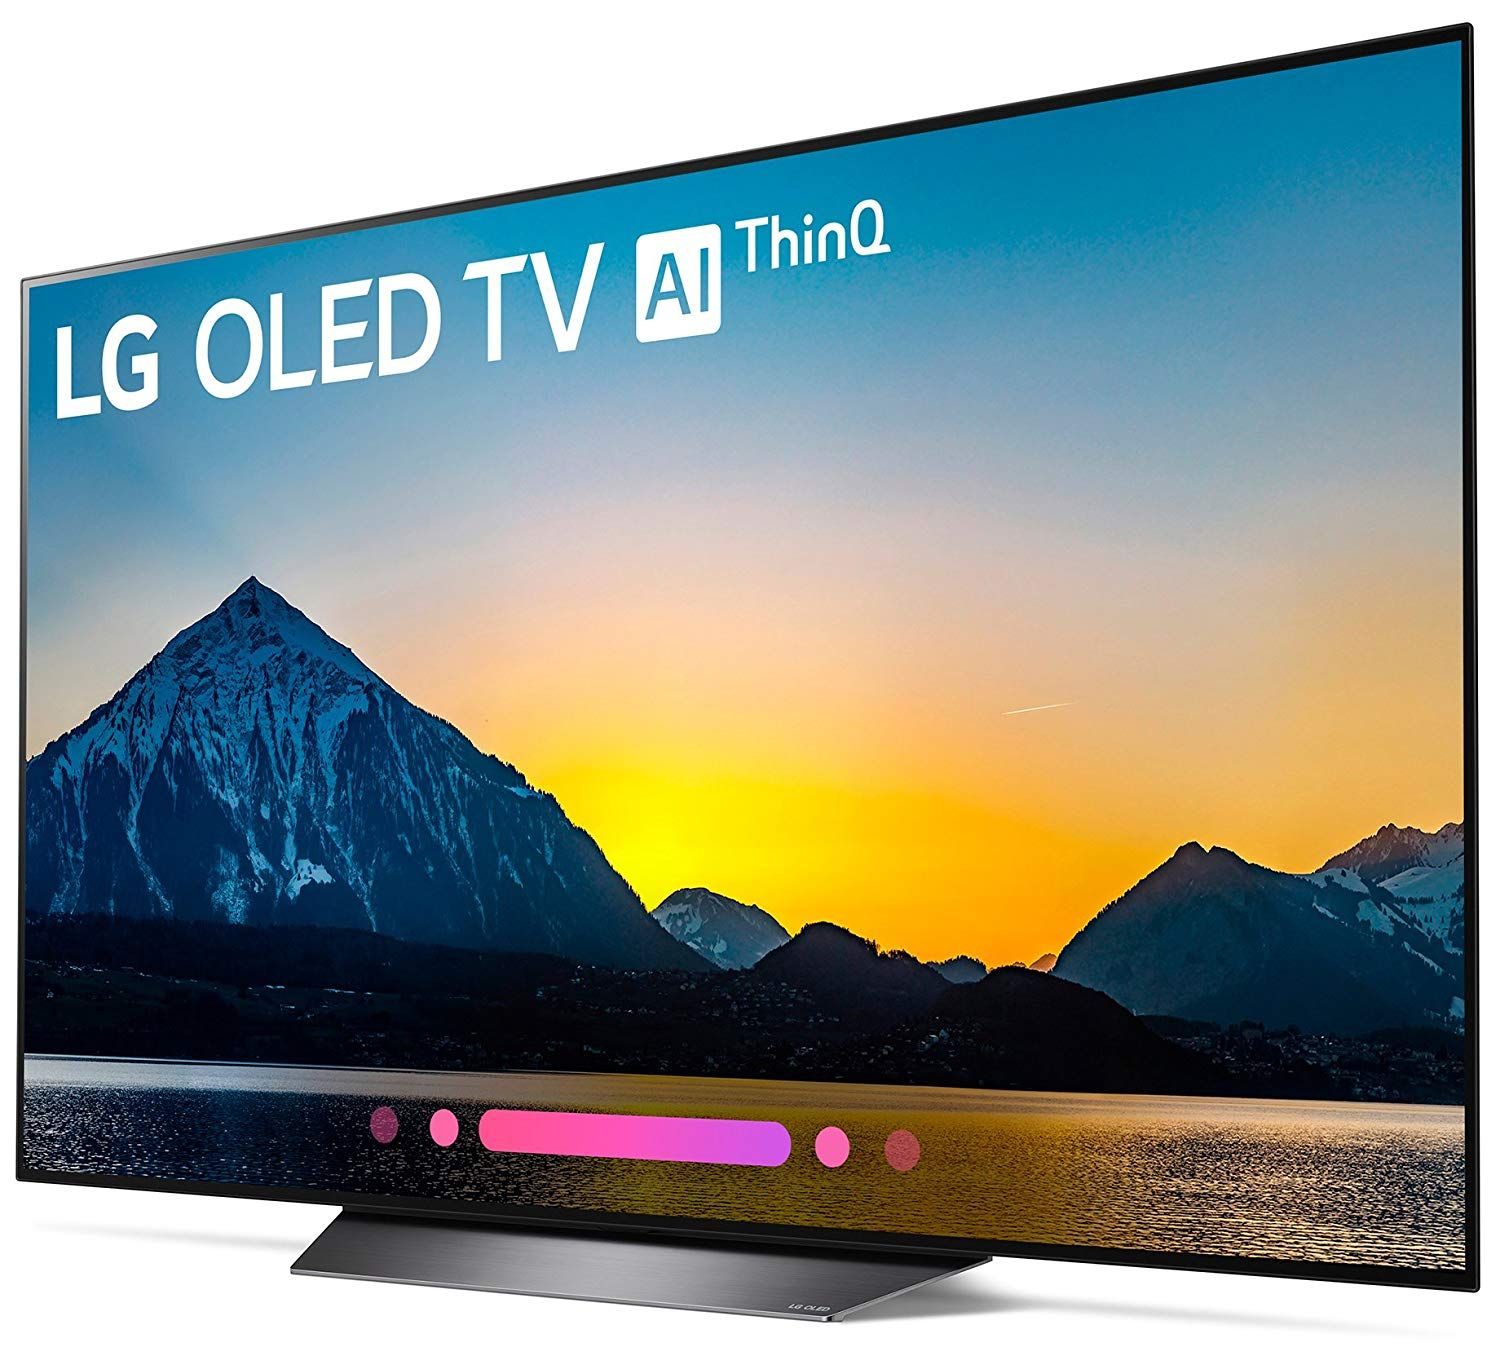 Best tv for pc gaming buying guide Oled tv, Amazon alexa